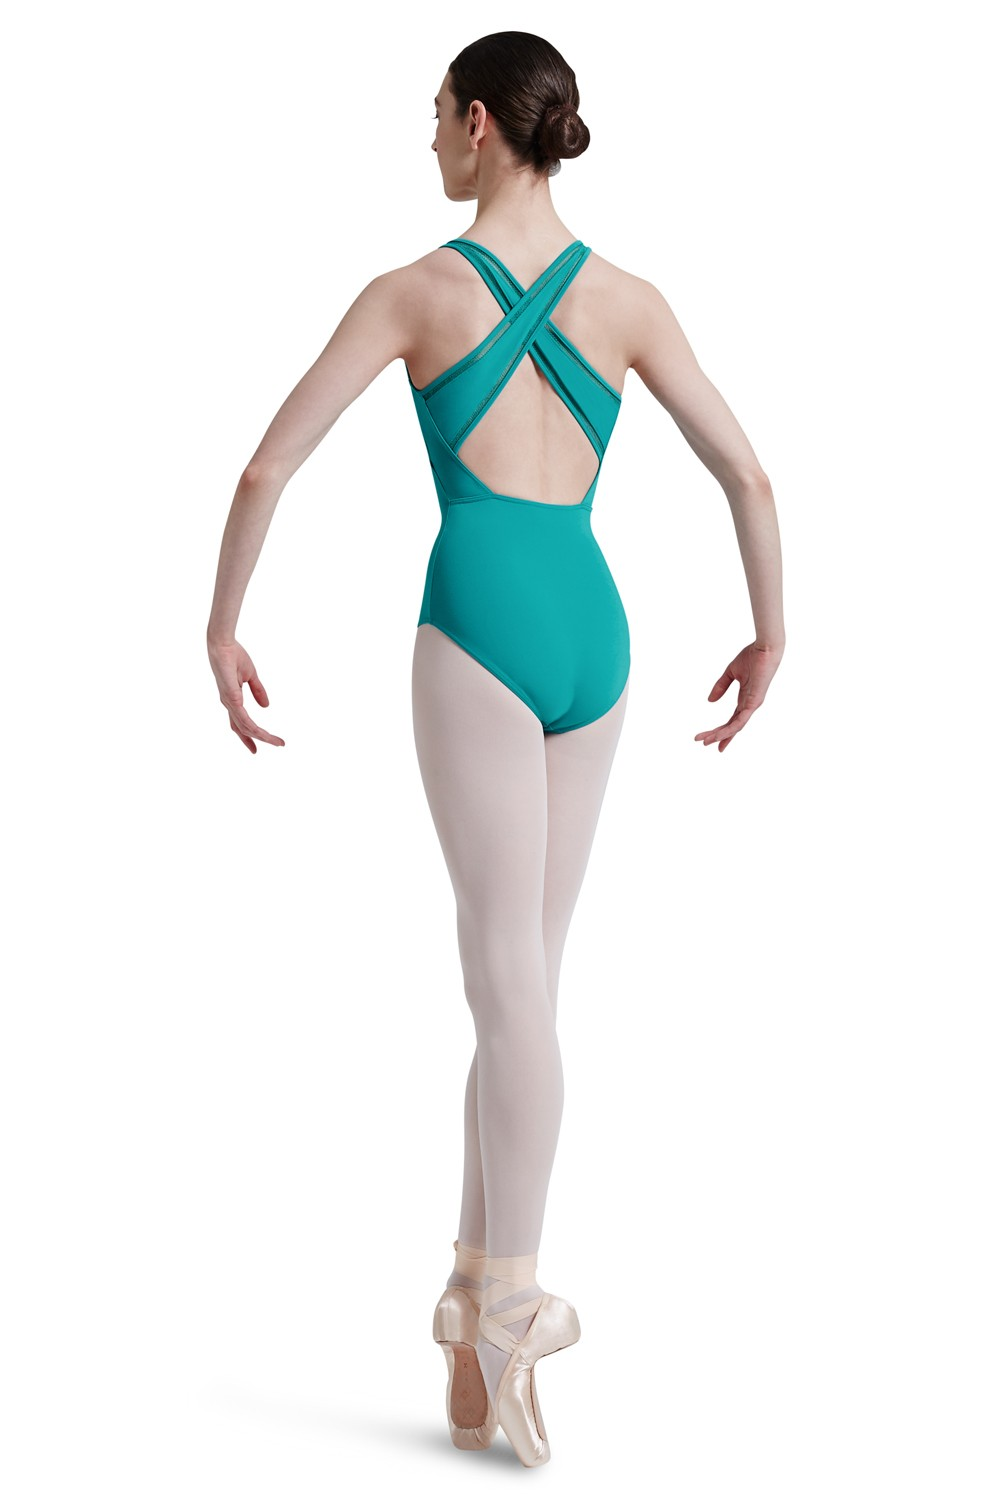 Body A Spalline Larghe Con Apertura Sul Retro Women's Dance Leotards